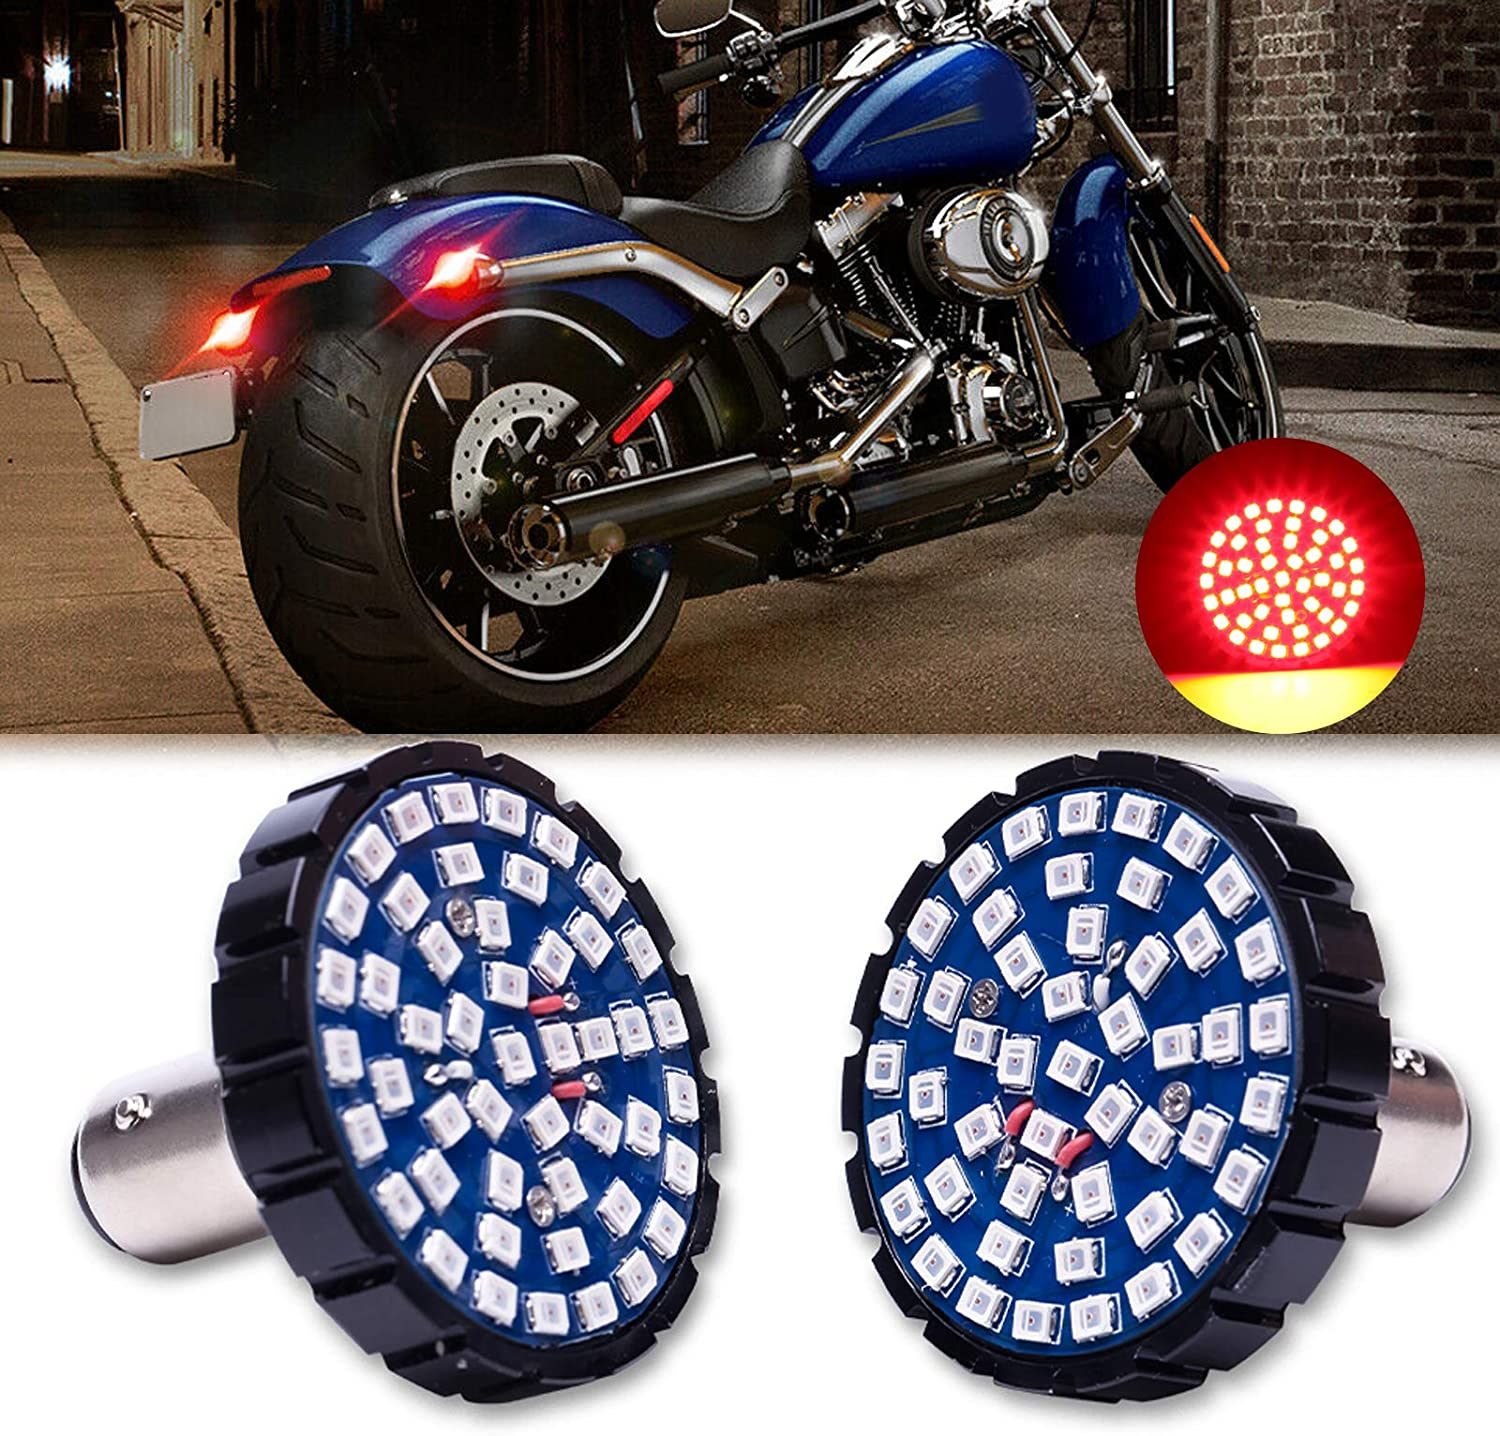 Front Turn Signals 2 Amber LED Motorcycle Front Rear Tail Lights Turn Signals /& Running Light with 1157 Insert Kit for Harley Davidson Street Glide Softail XL883N Iron 883 2009-2014